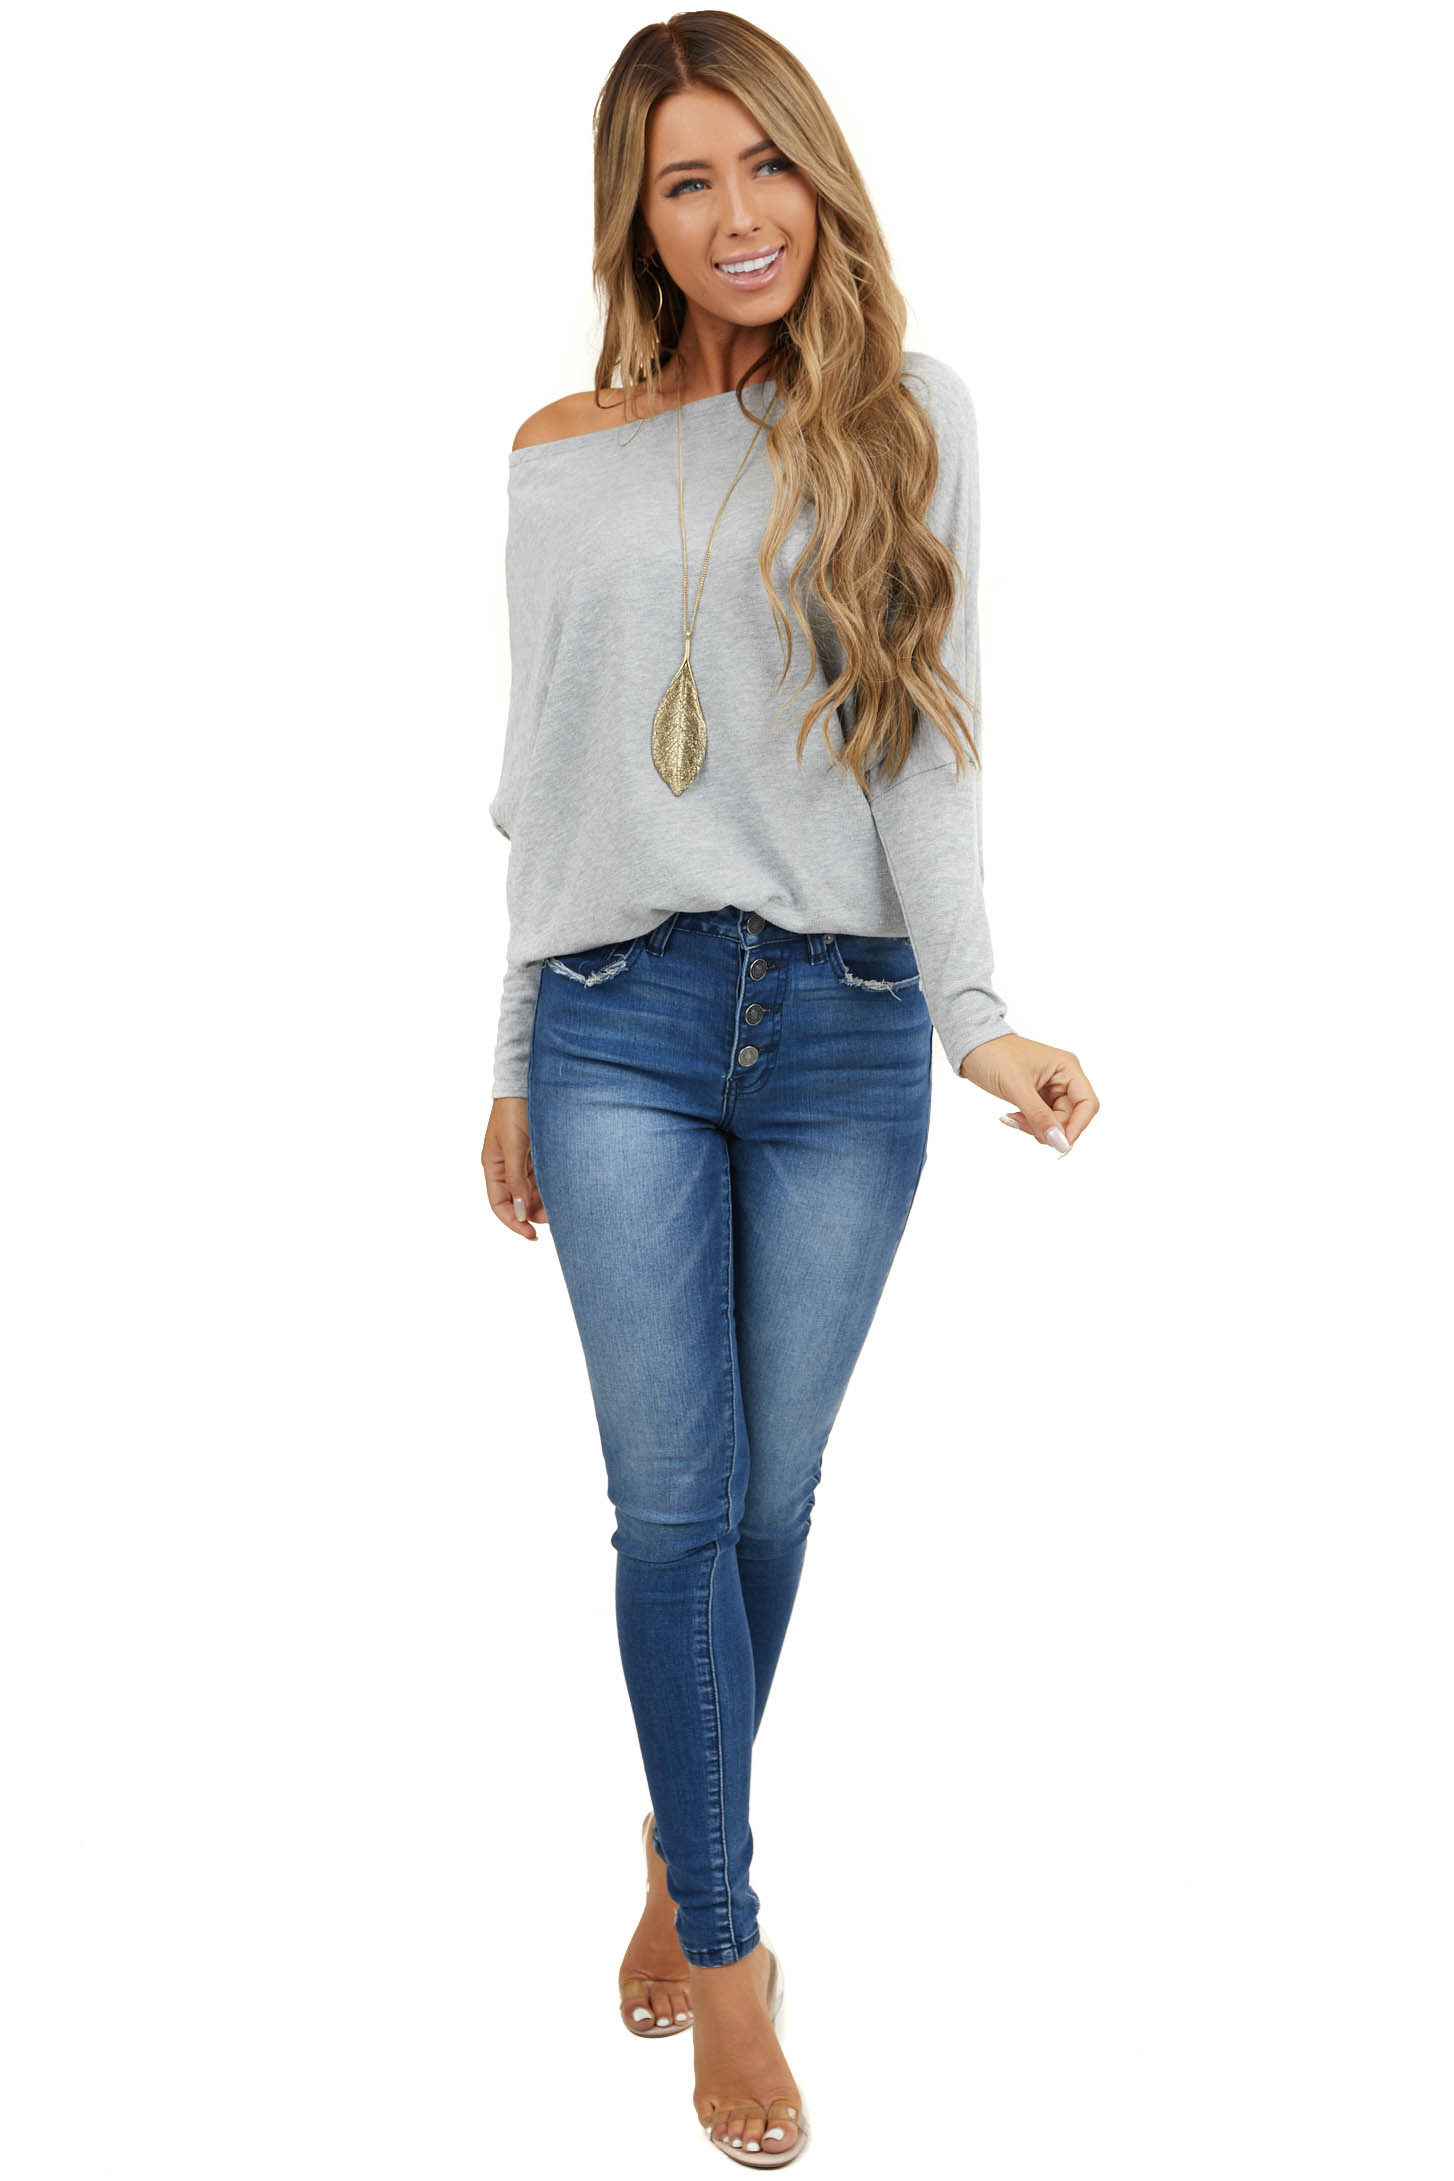 Heather Grey Round Neck Knit Top with Long Dolman Sleeves